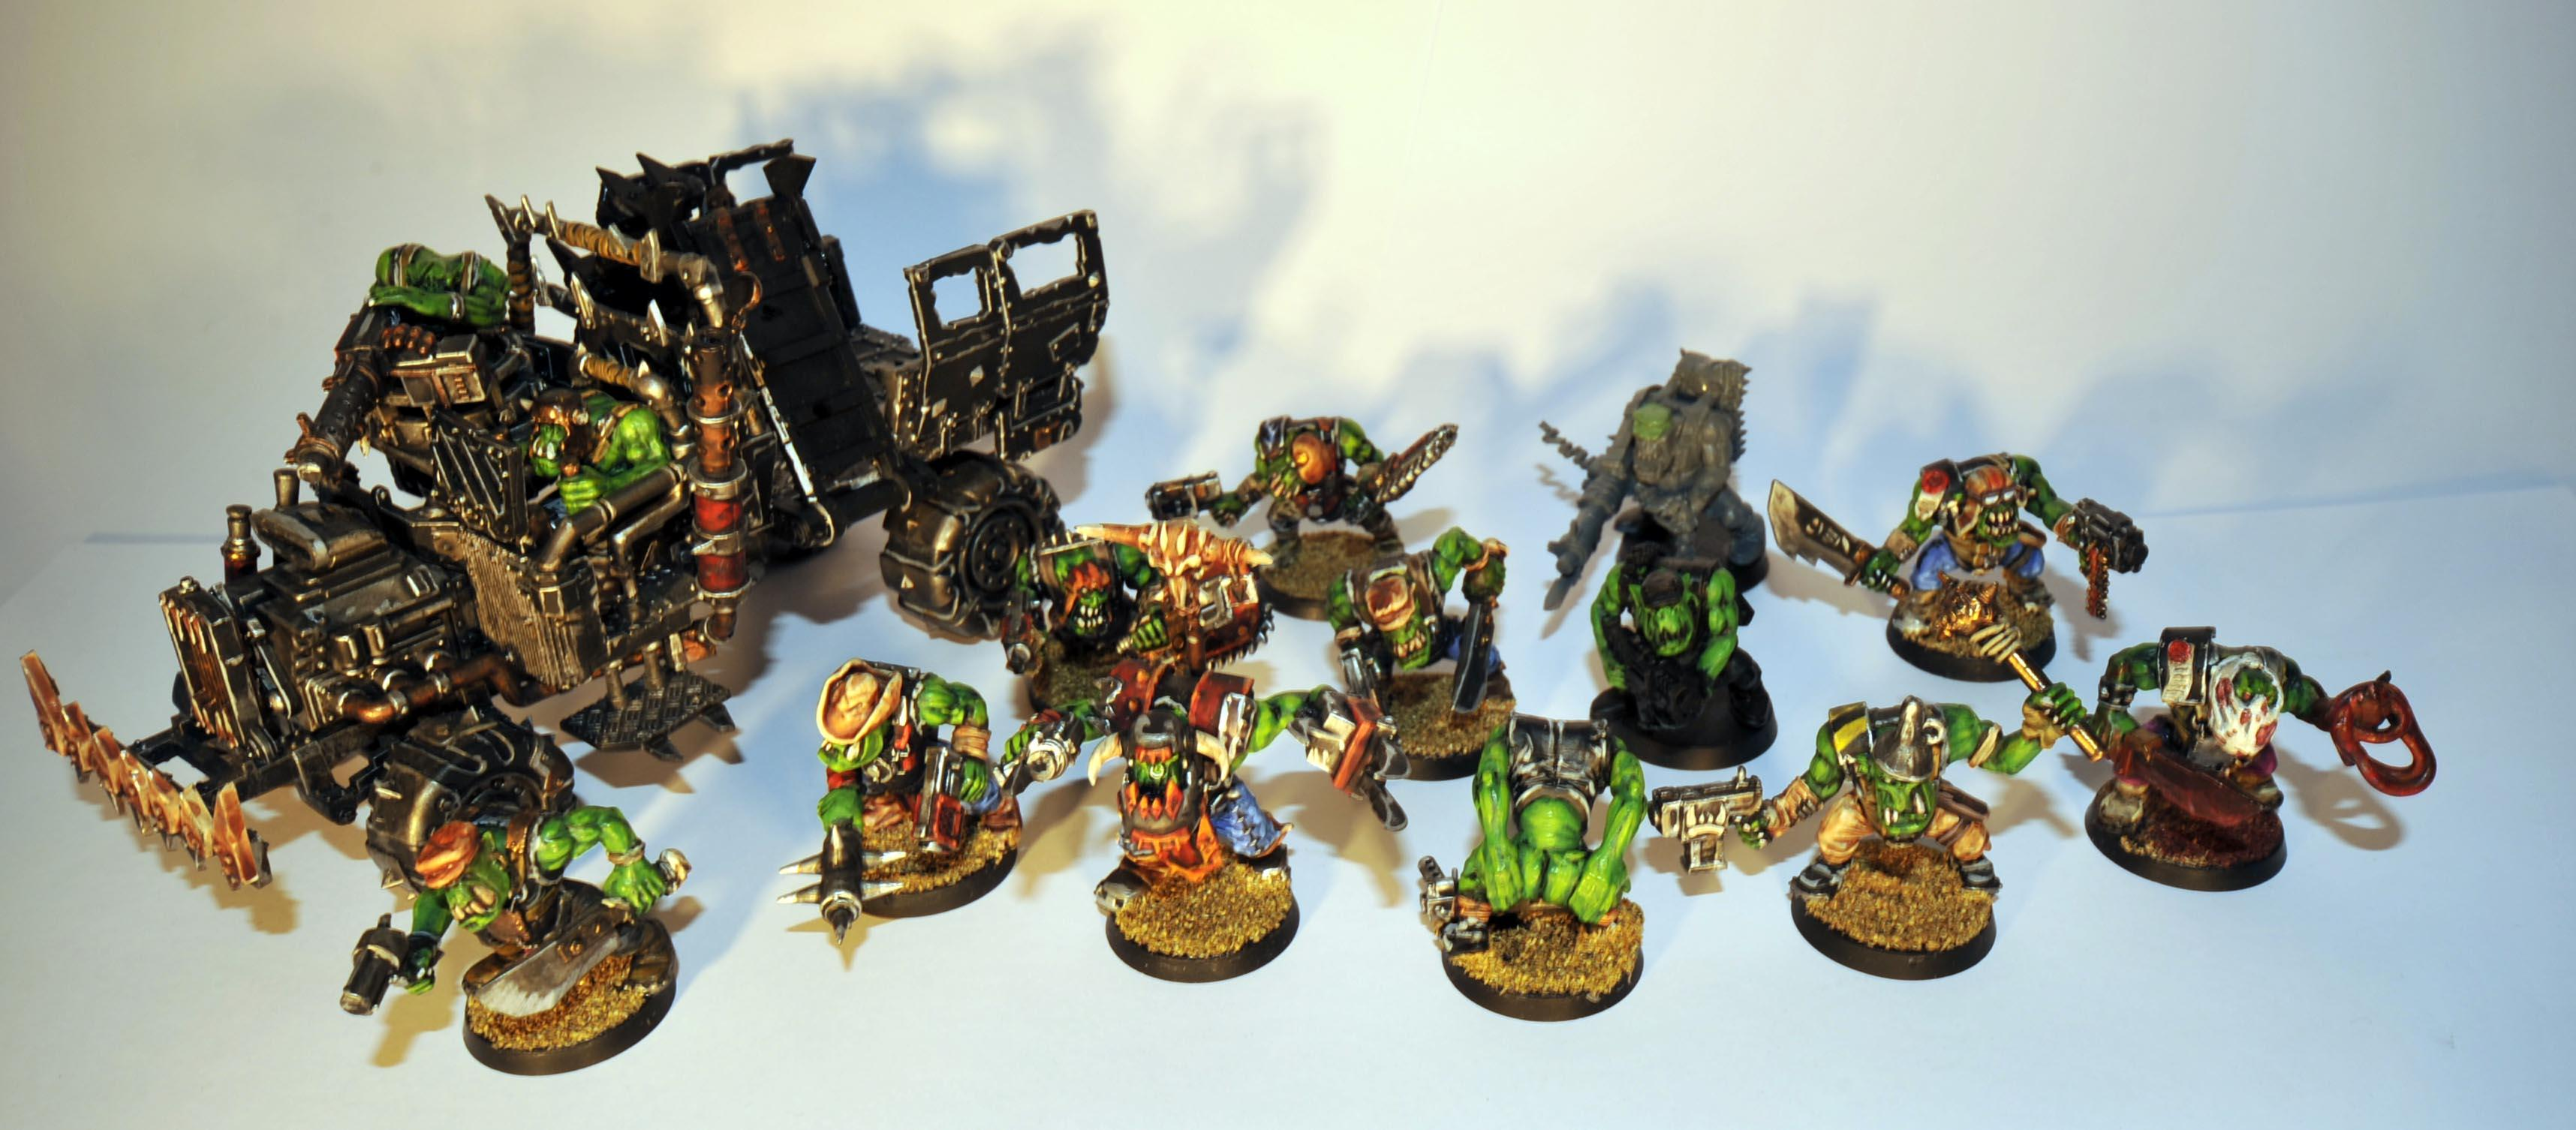 Boy, Evil Sunz, Mob, Mooning Ork, Orki, Orks, Speed Freaks, Truk, Truk Boyz, Work In Progress